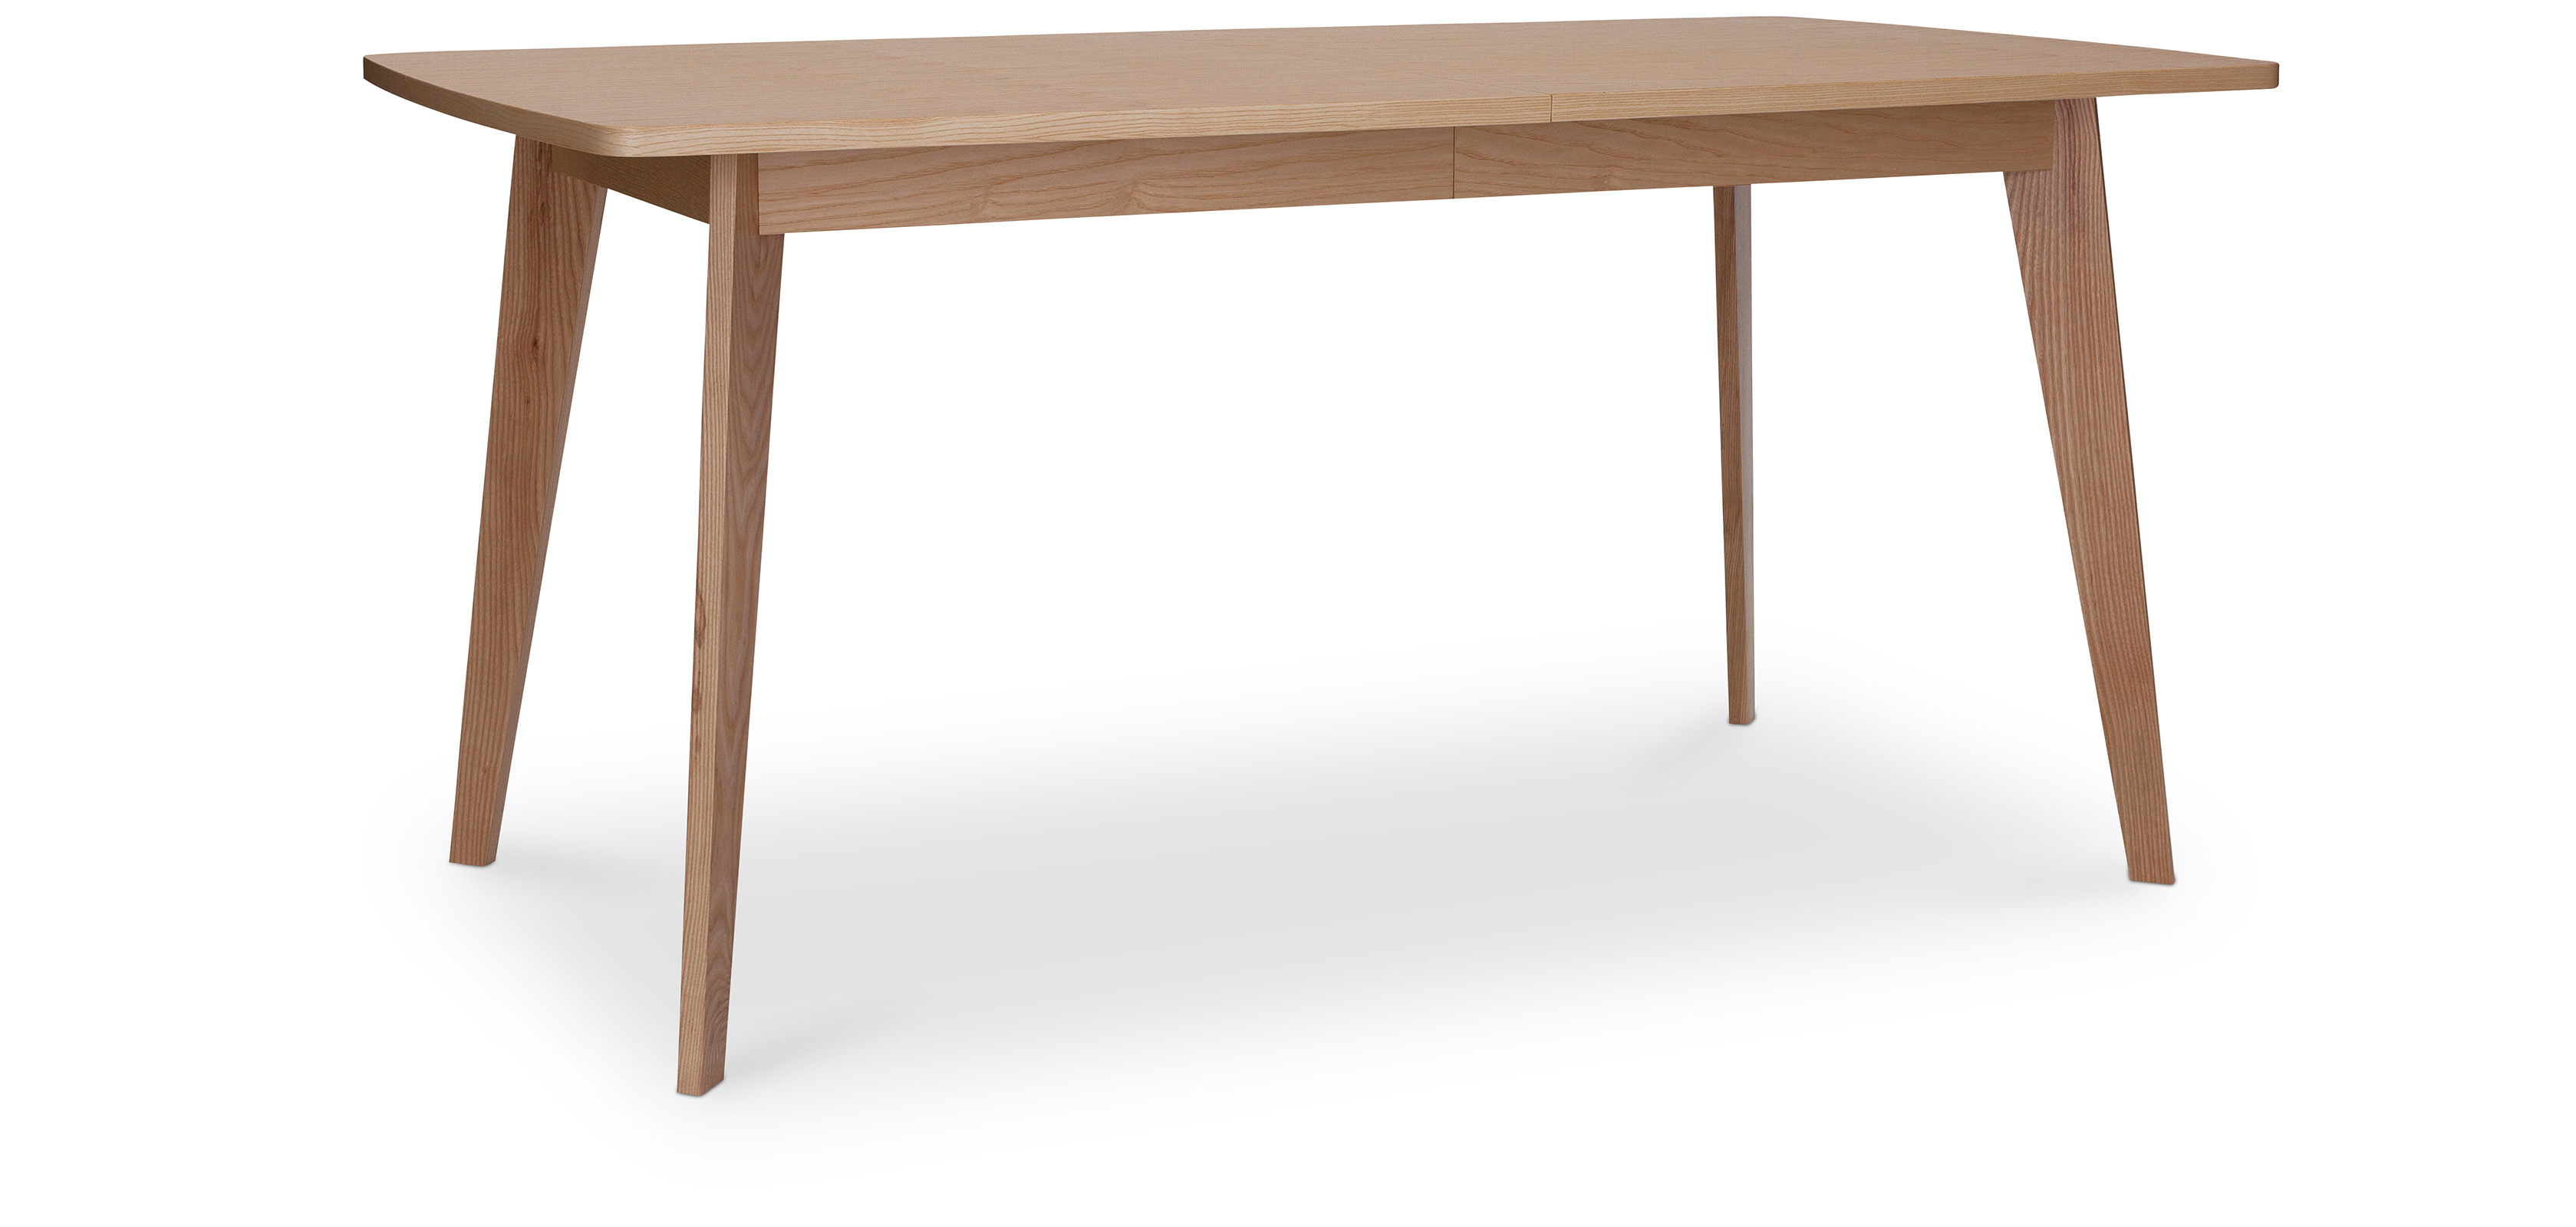 Table salle a manger scandinave valdiz for Table scandinave salle a manger